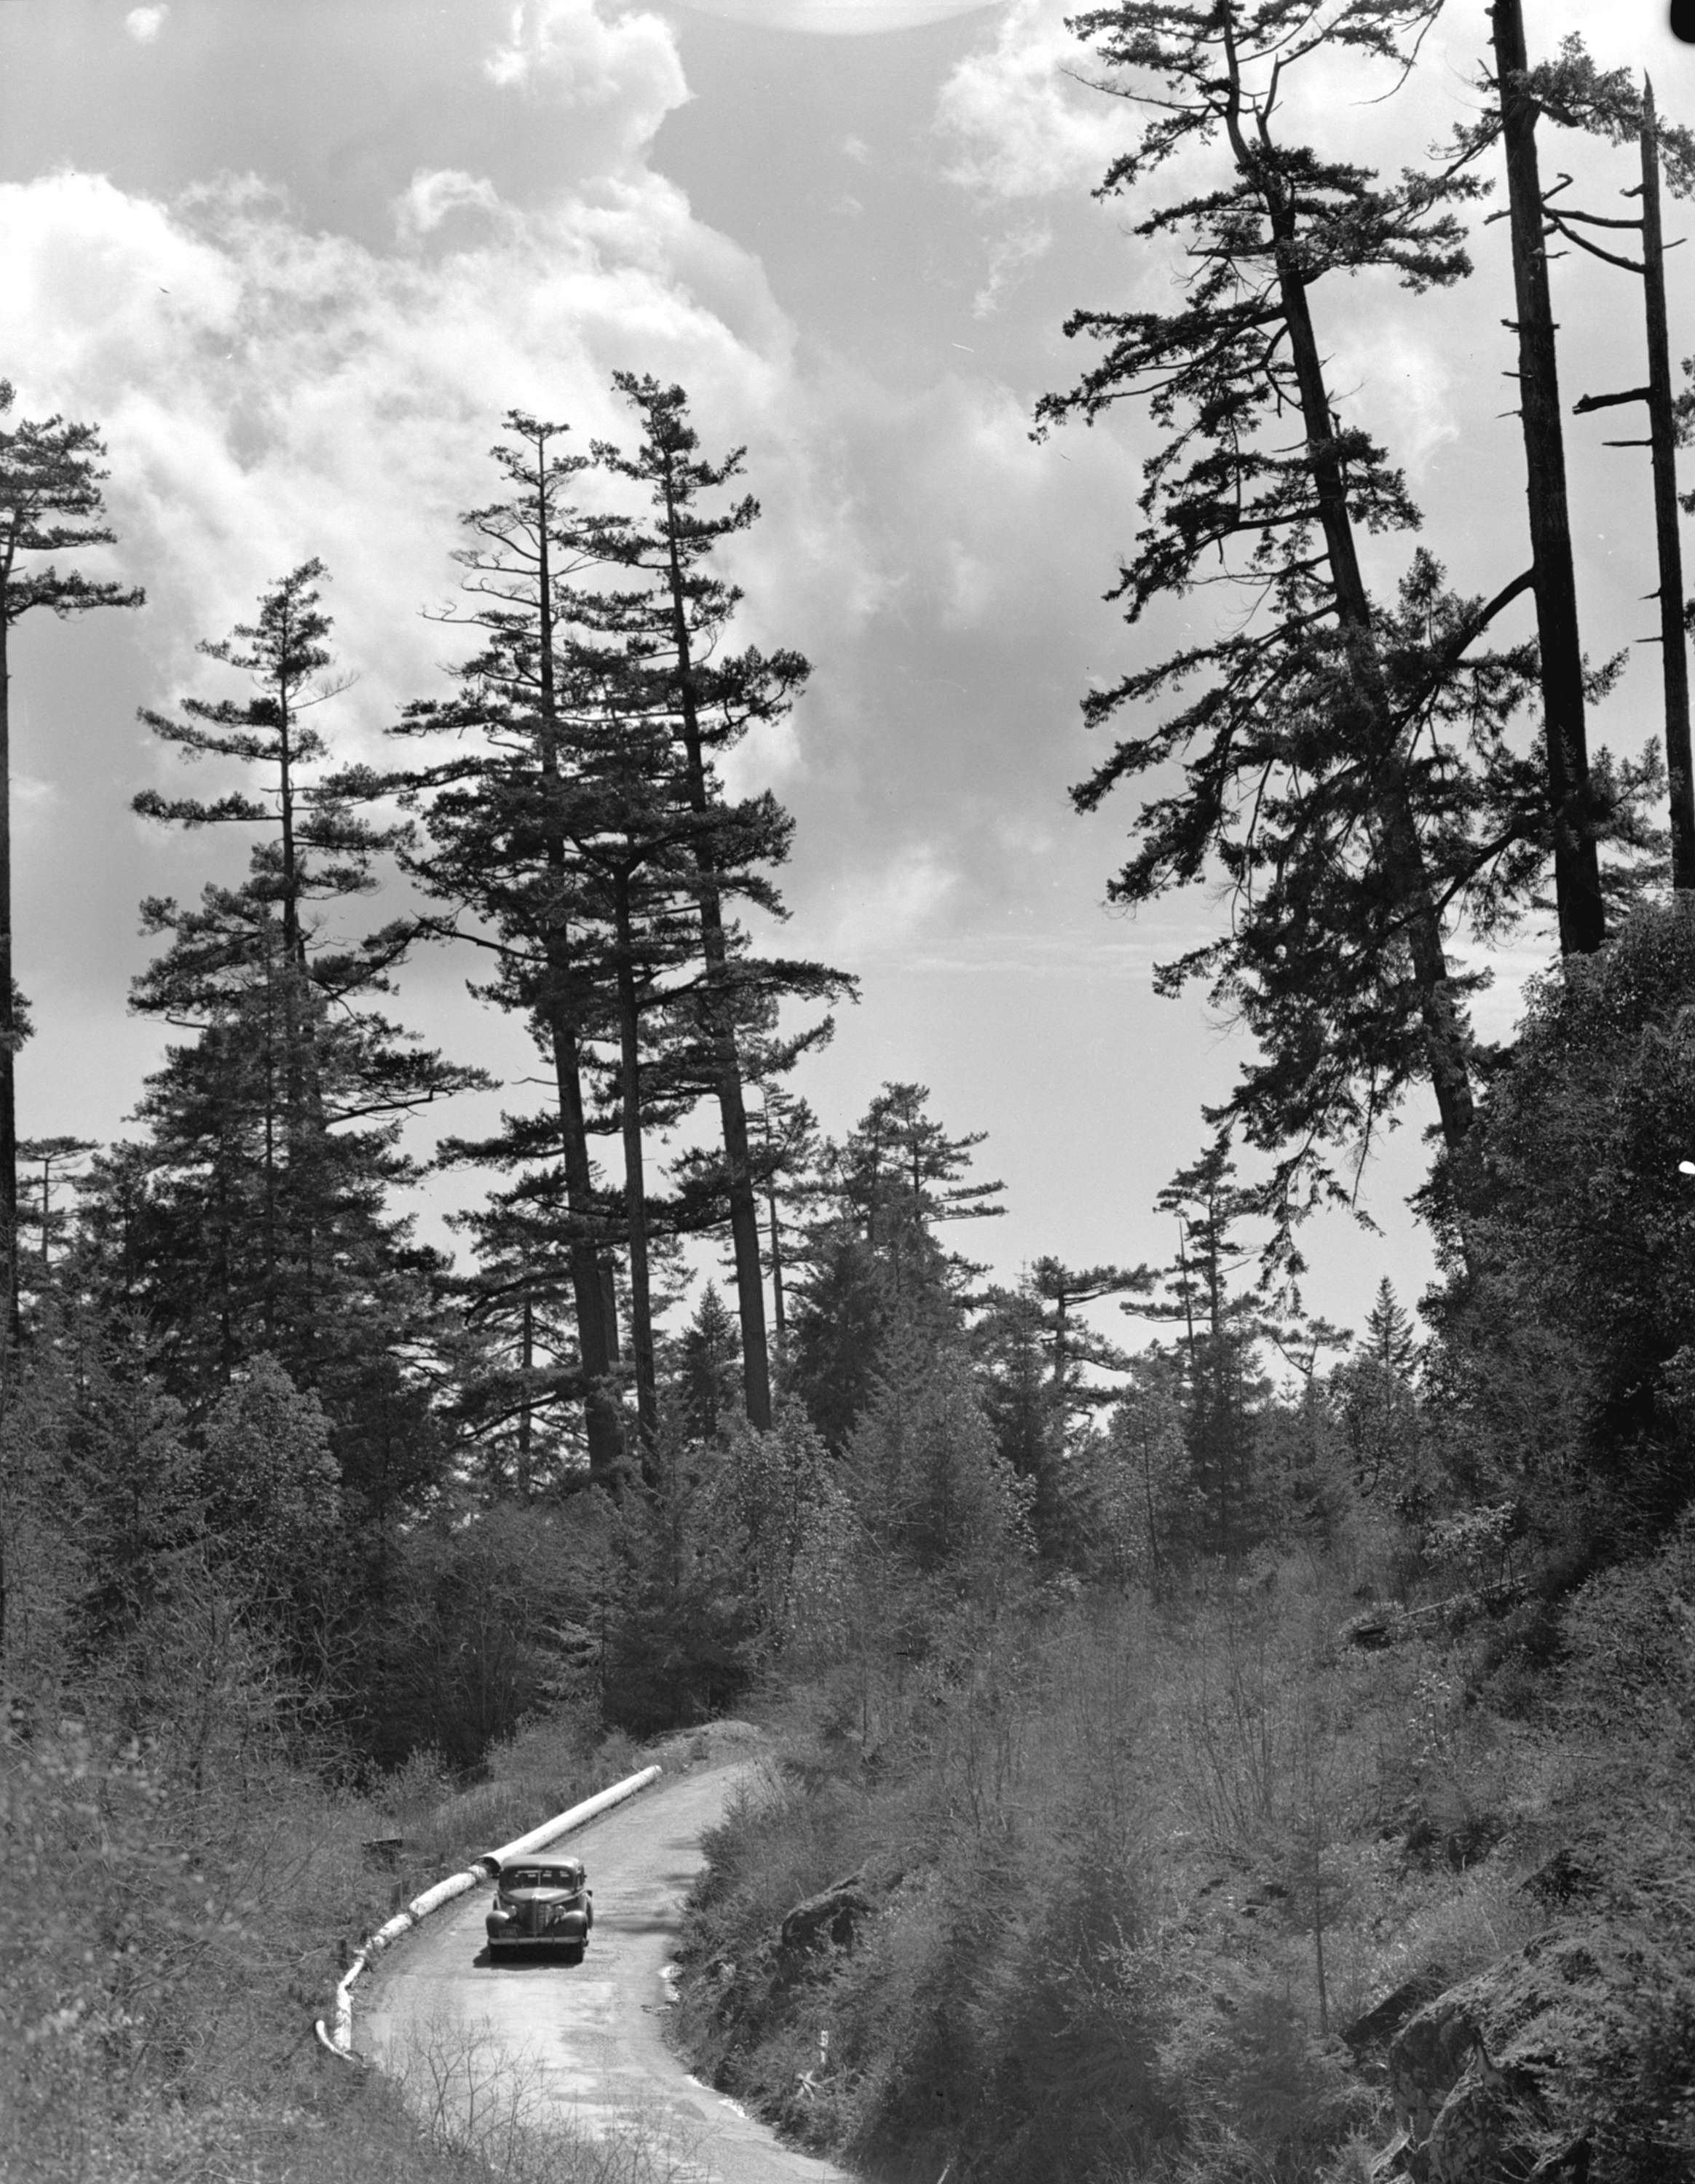 Car on Malahat Drive, Vancouver Island, B C  - City of